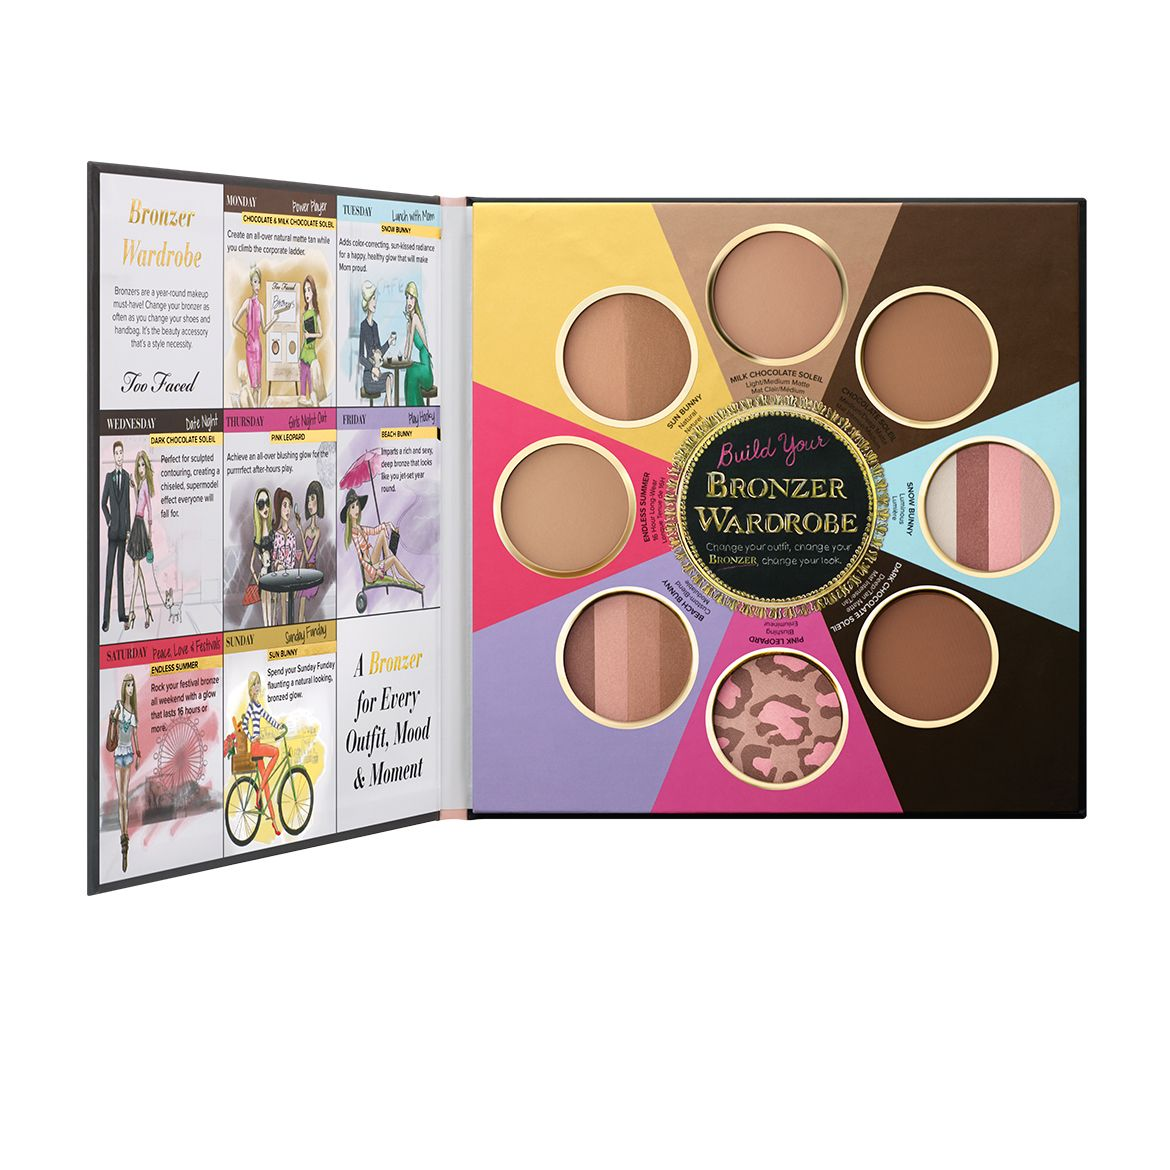 Enhance your bronzer palette with the Too Faced Little Black Book of Bronzers. This bronzer wardrobe features eight of our most iconic bronzers, including our new Dark Chocolate Soleil.